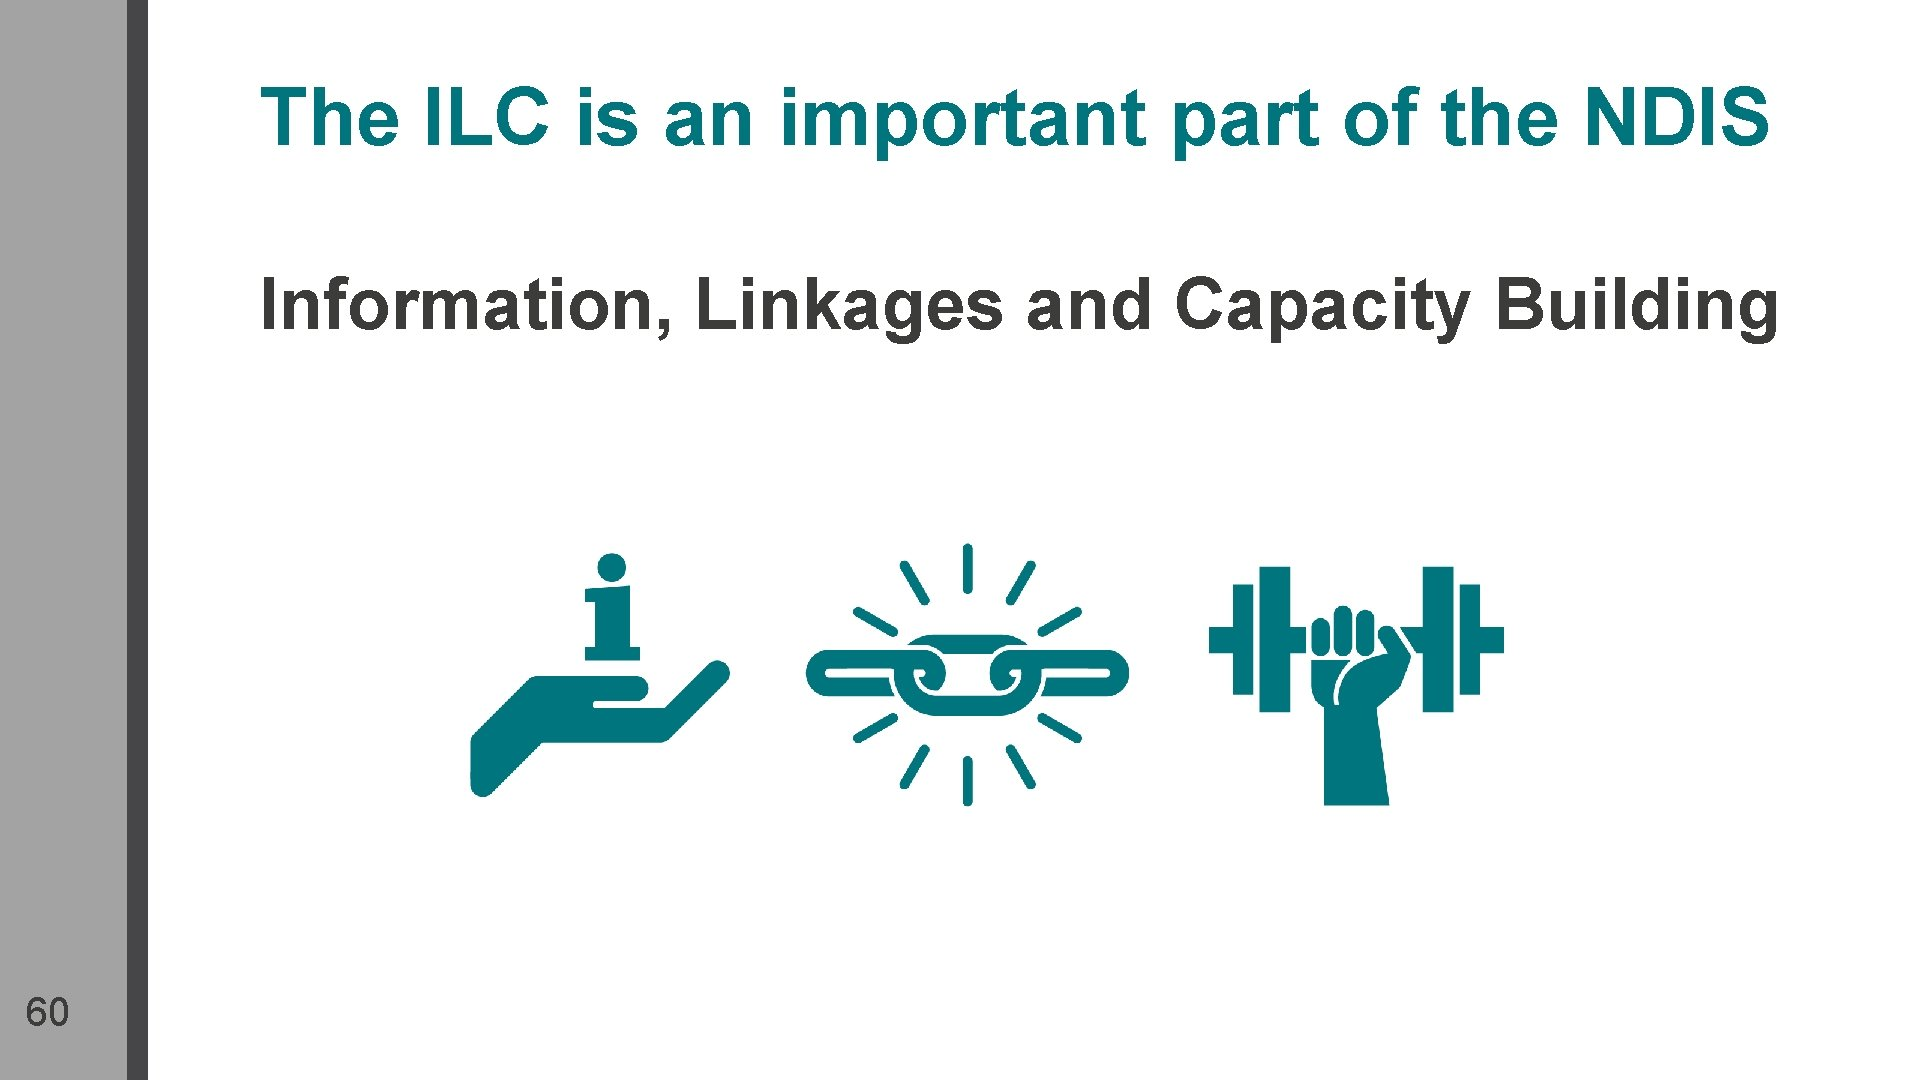 The ILC is an important part of the NDIS Information, Linkages and Capacity Building